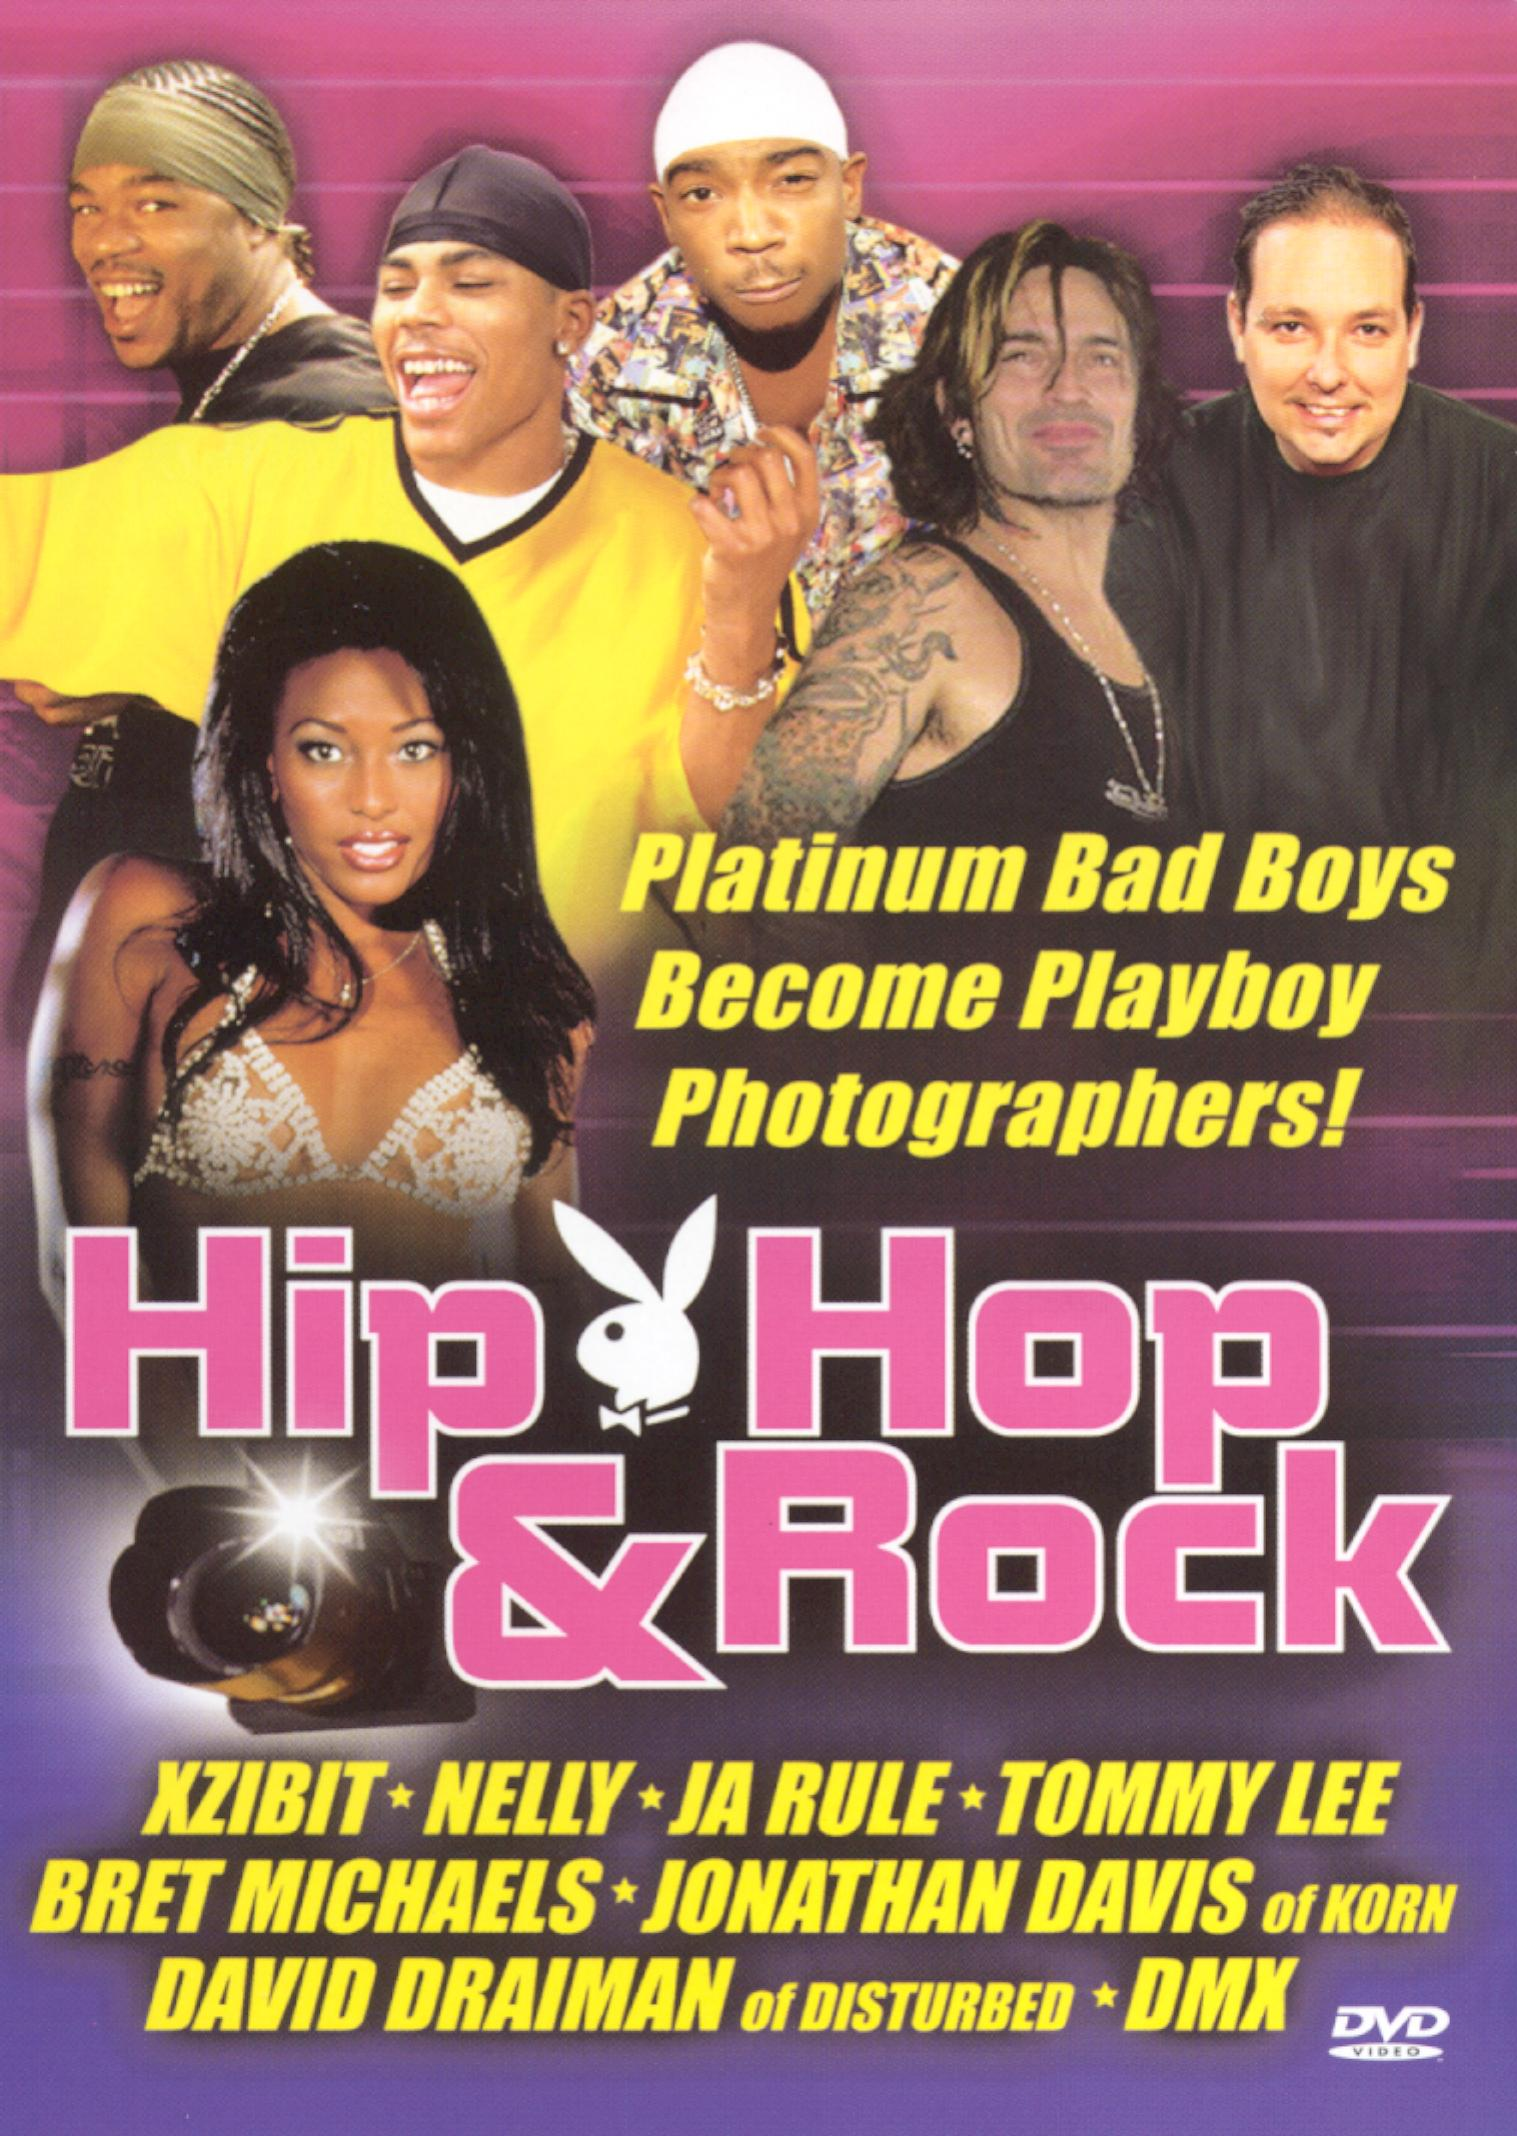 Playboy: Shooting Stars - Hip Hop and Rock